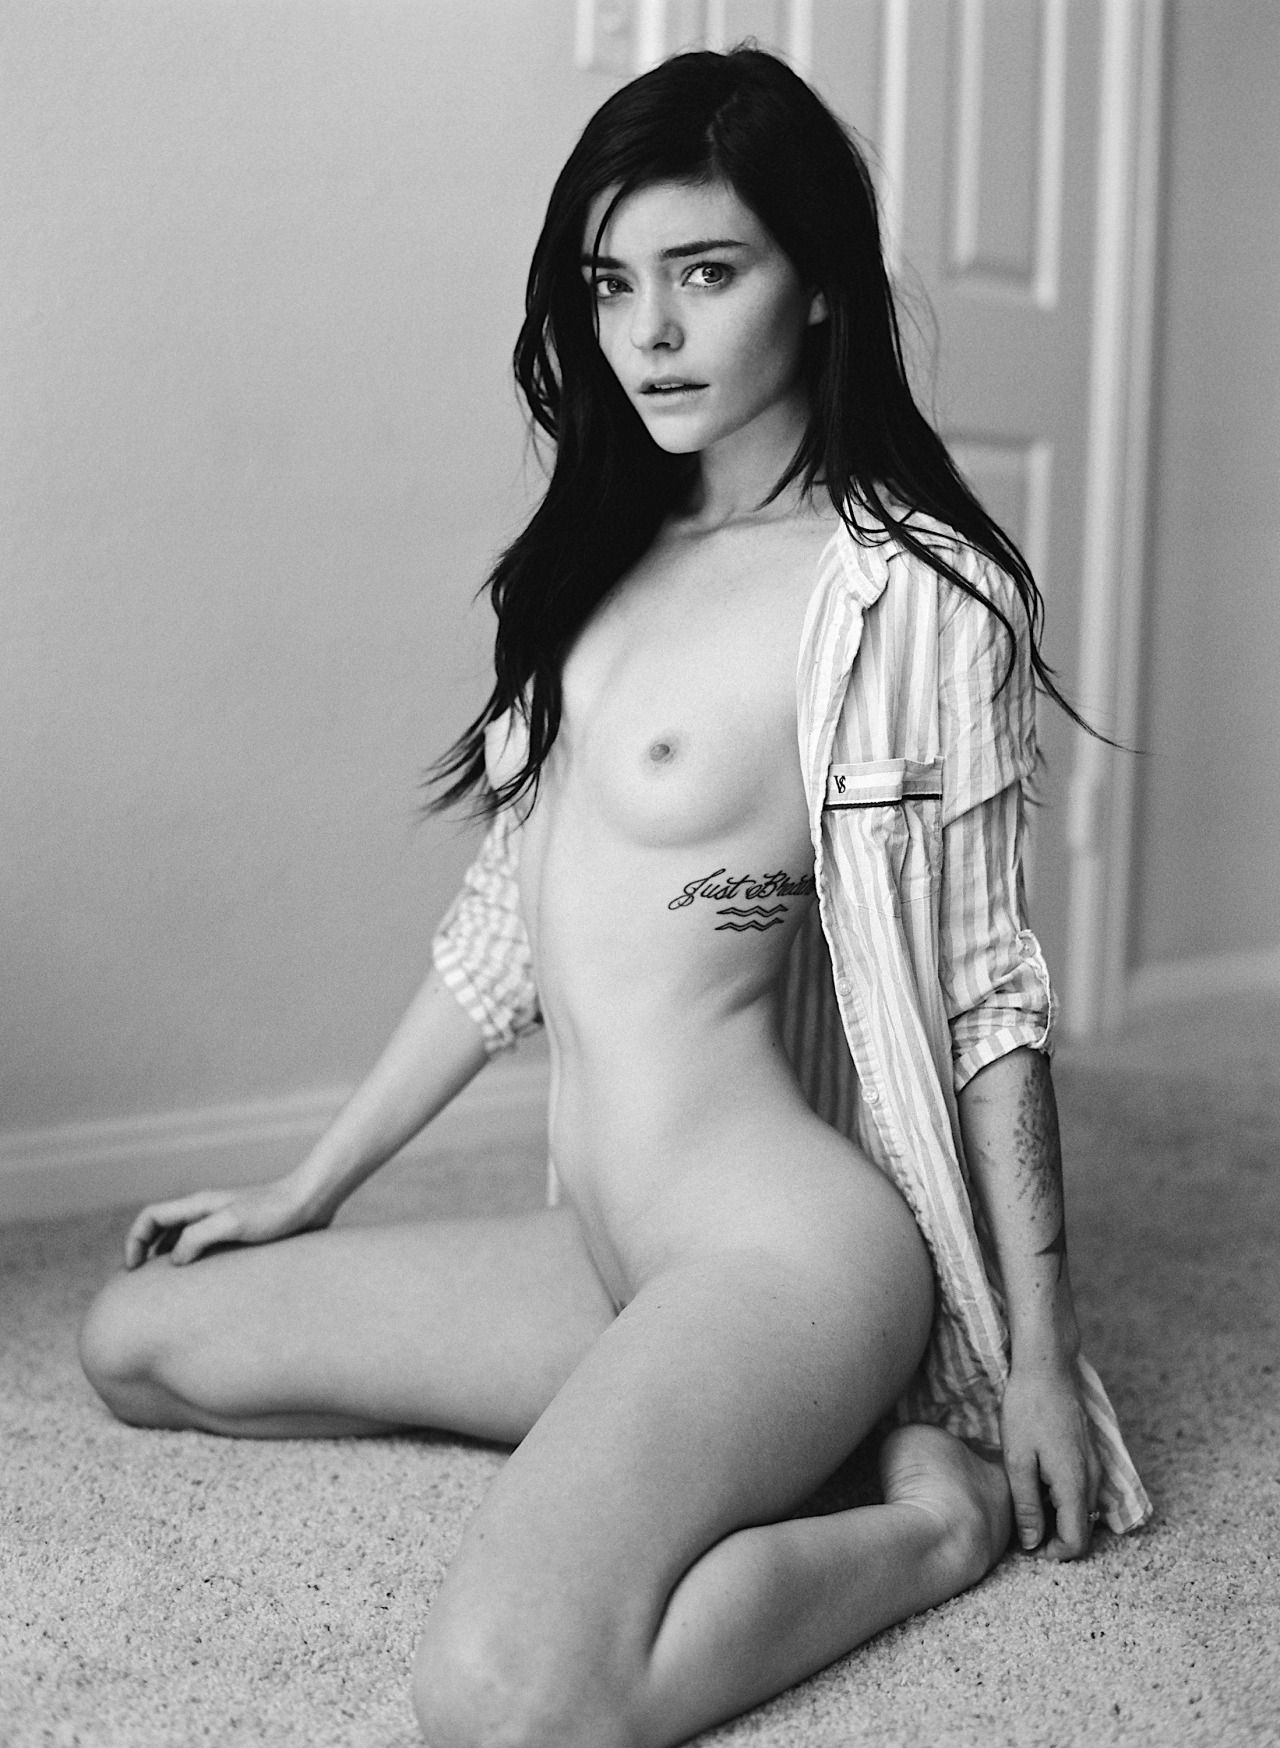 Ashe Maree Porn Video a tender ashe maree   free download nude photo gallery